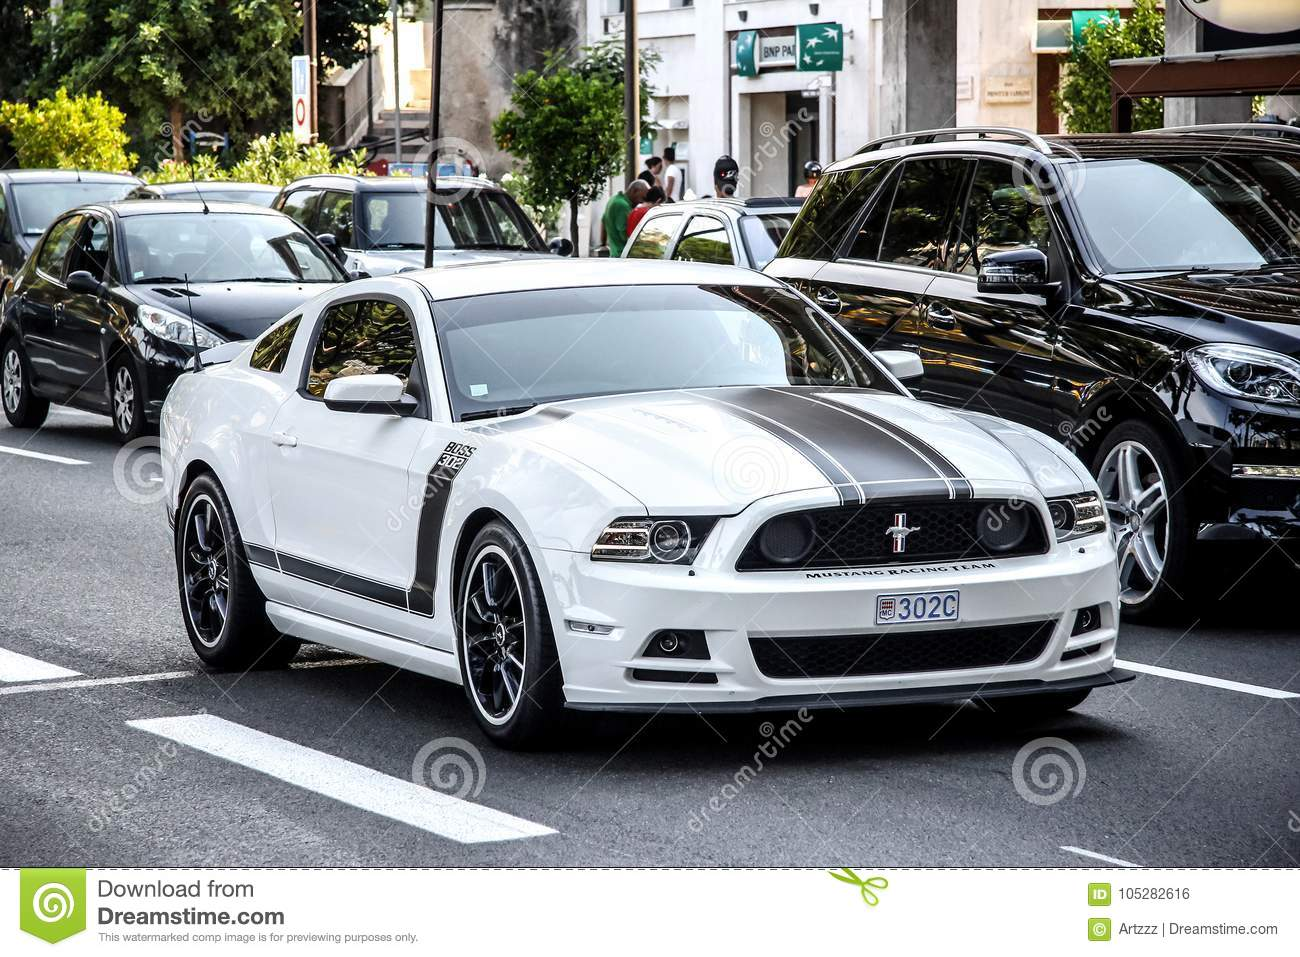 2014 Ford Mustang Boss 302s 302 Editorial Photo Image Of Machine 105282616 La Condamine Monaco August 2 White American Sportscar In The City Street